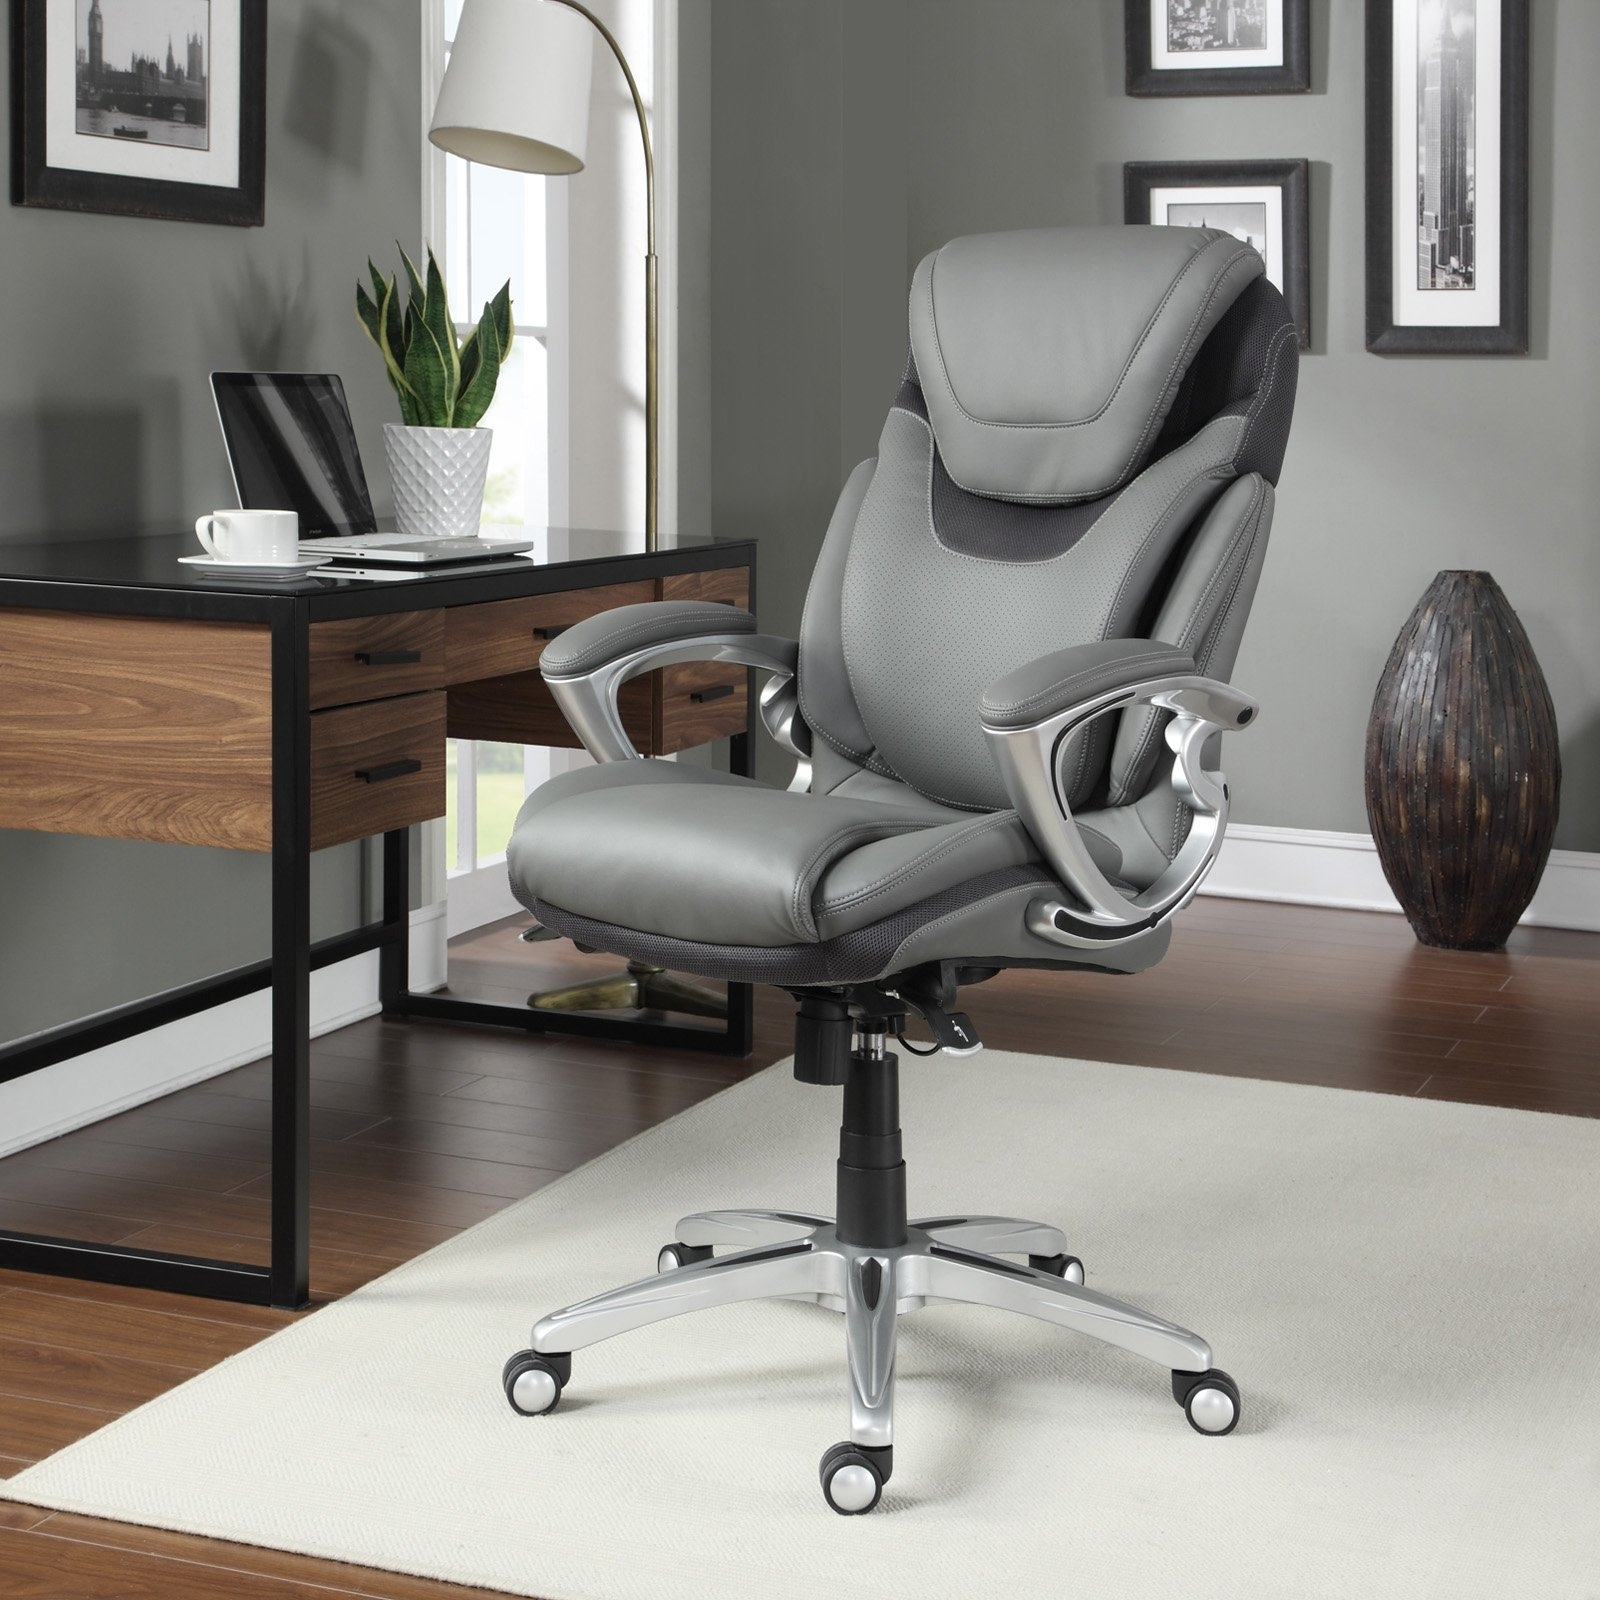 Well Liked Gray Leather Executive Office Chair • Office Chairs Regarding High End Executive Office Chairs (View 19 of 20)